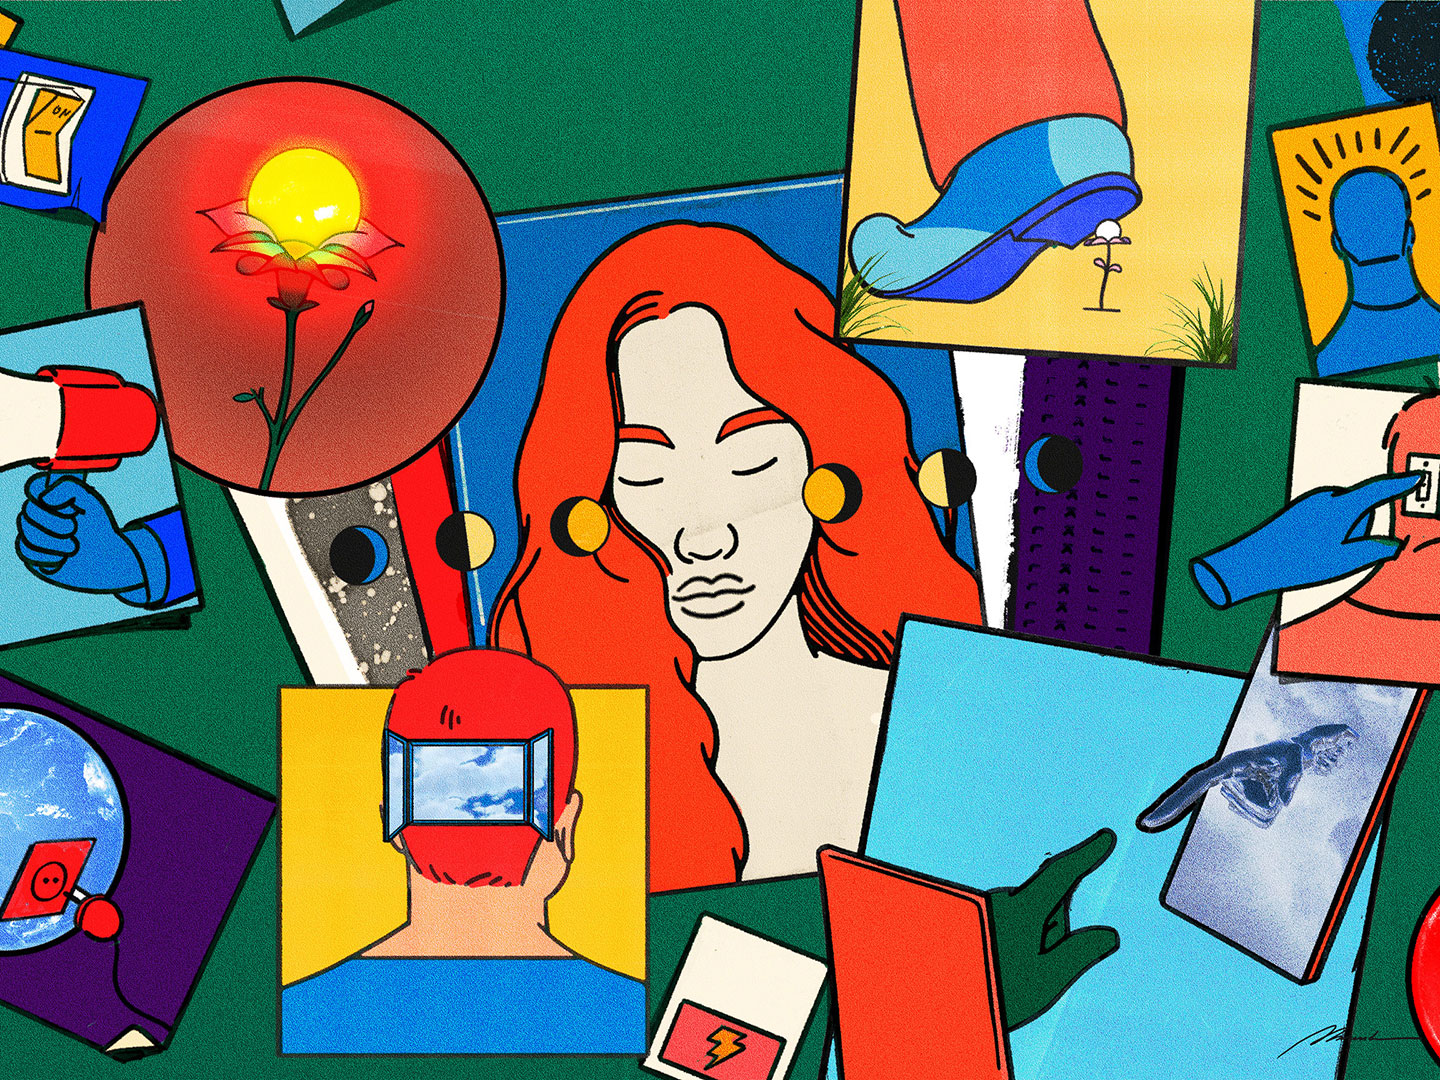 A colourful composite illustration with a woman's face at its centre.